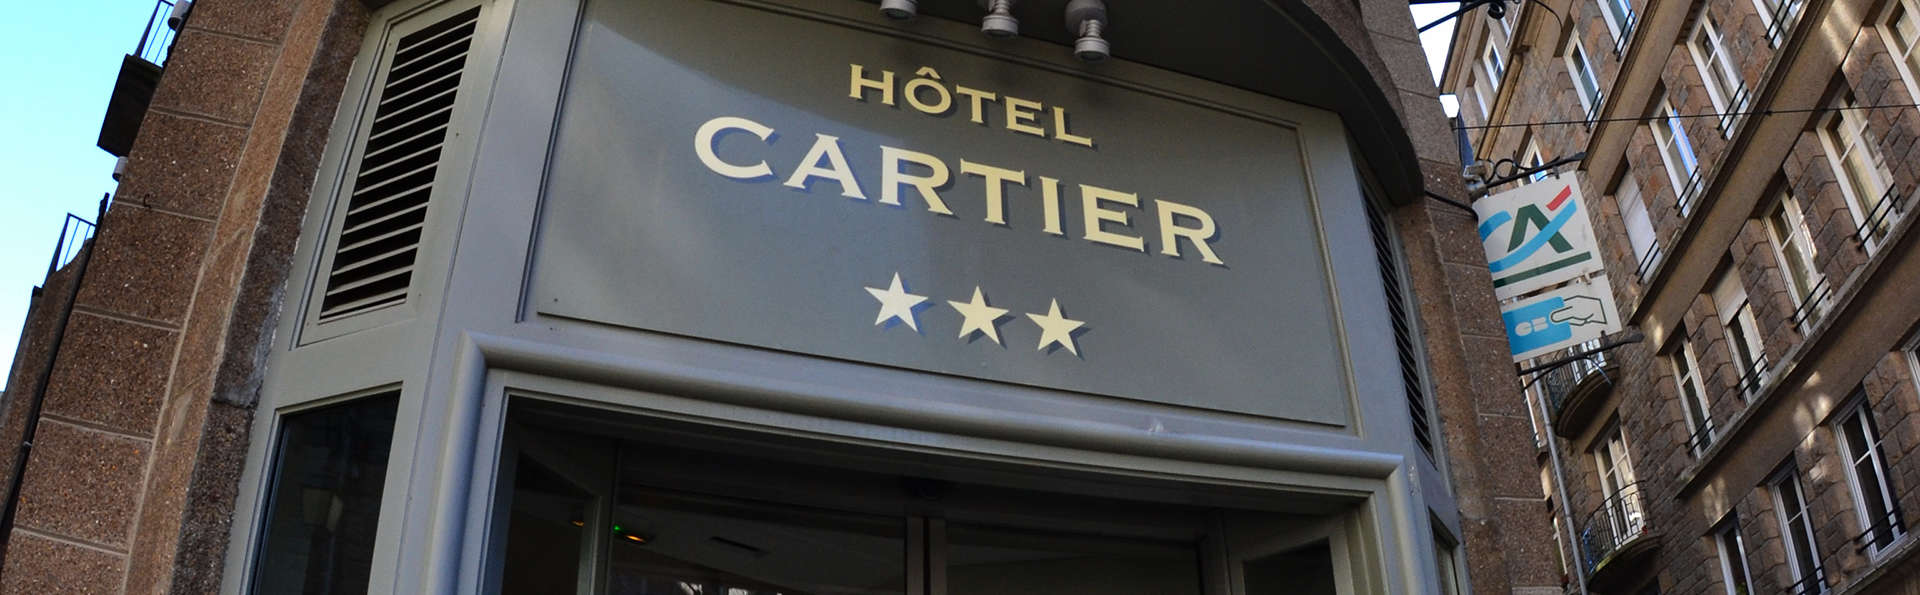 Hôtel Cartier - edit_front2.jpg